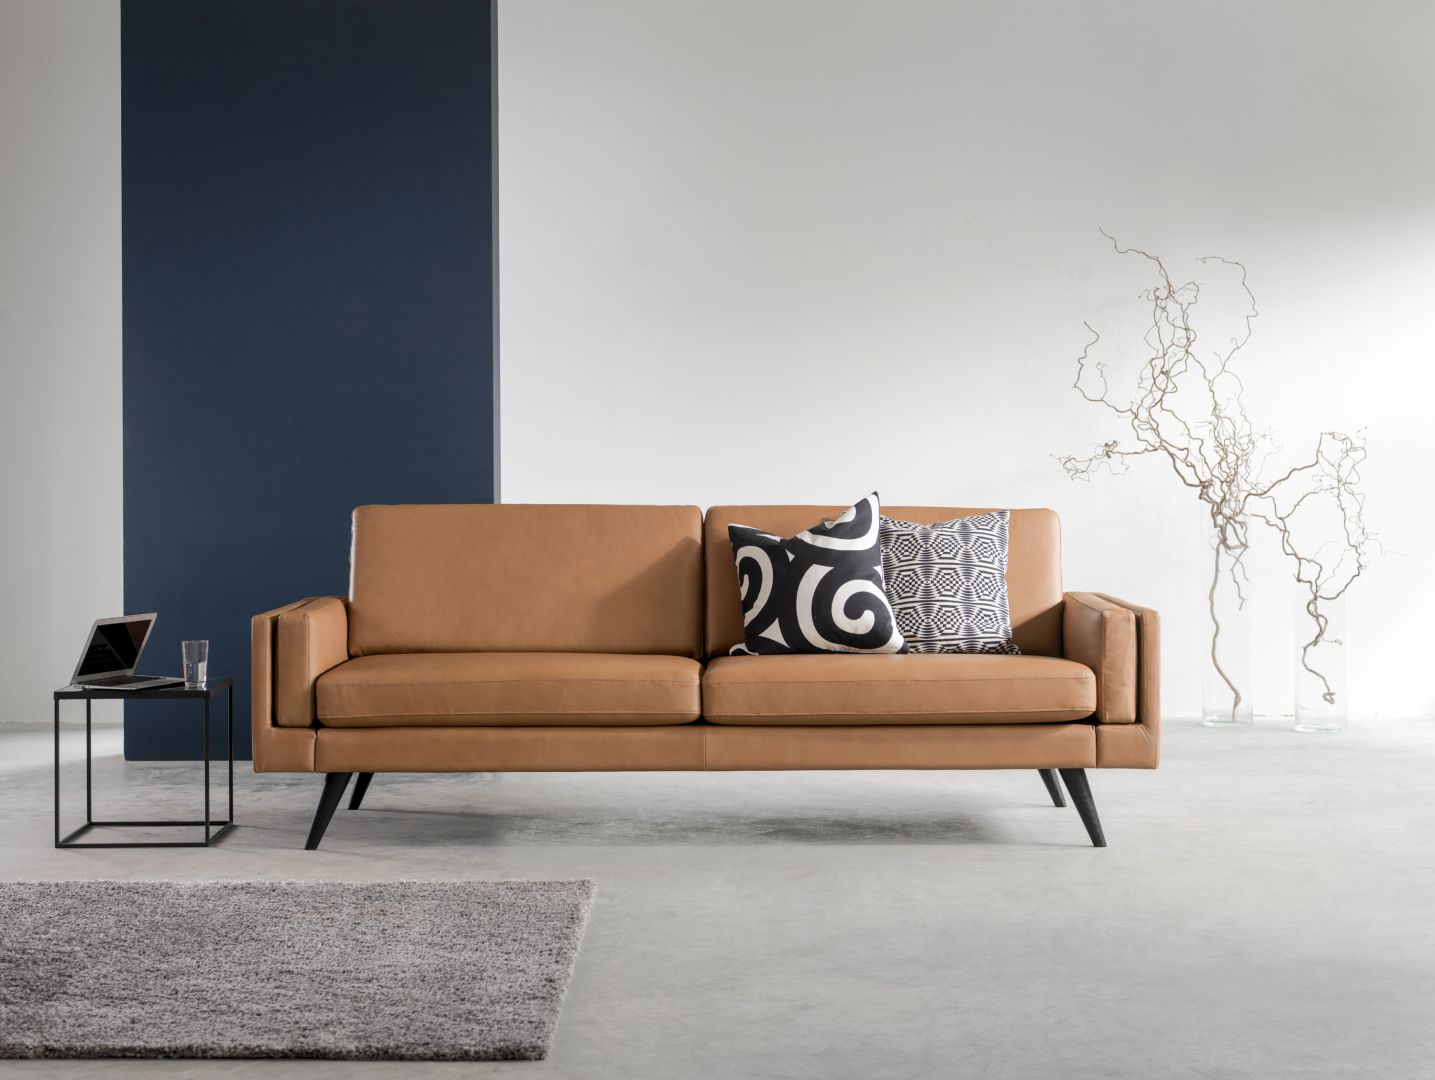 gus modern sofa sale overstuffed couches sofas fjords nordic - arm 11 the century house madison, wi